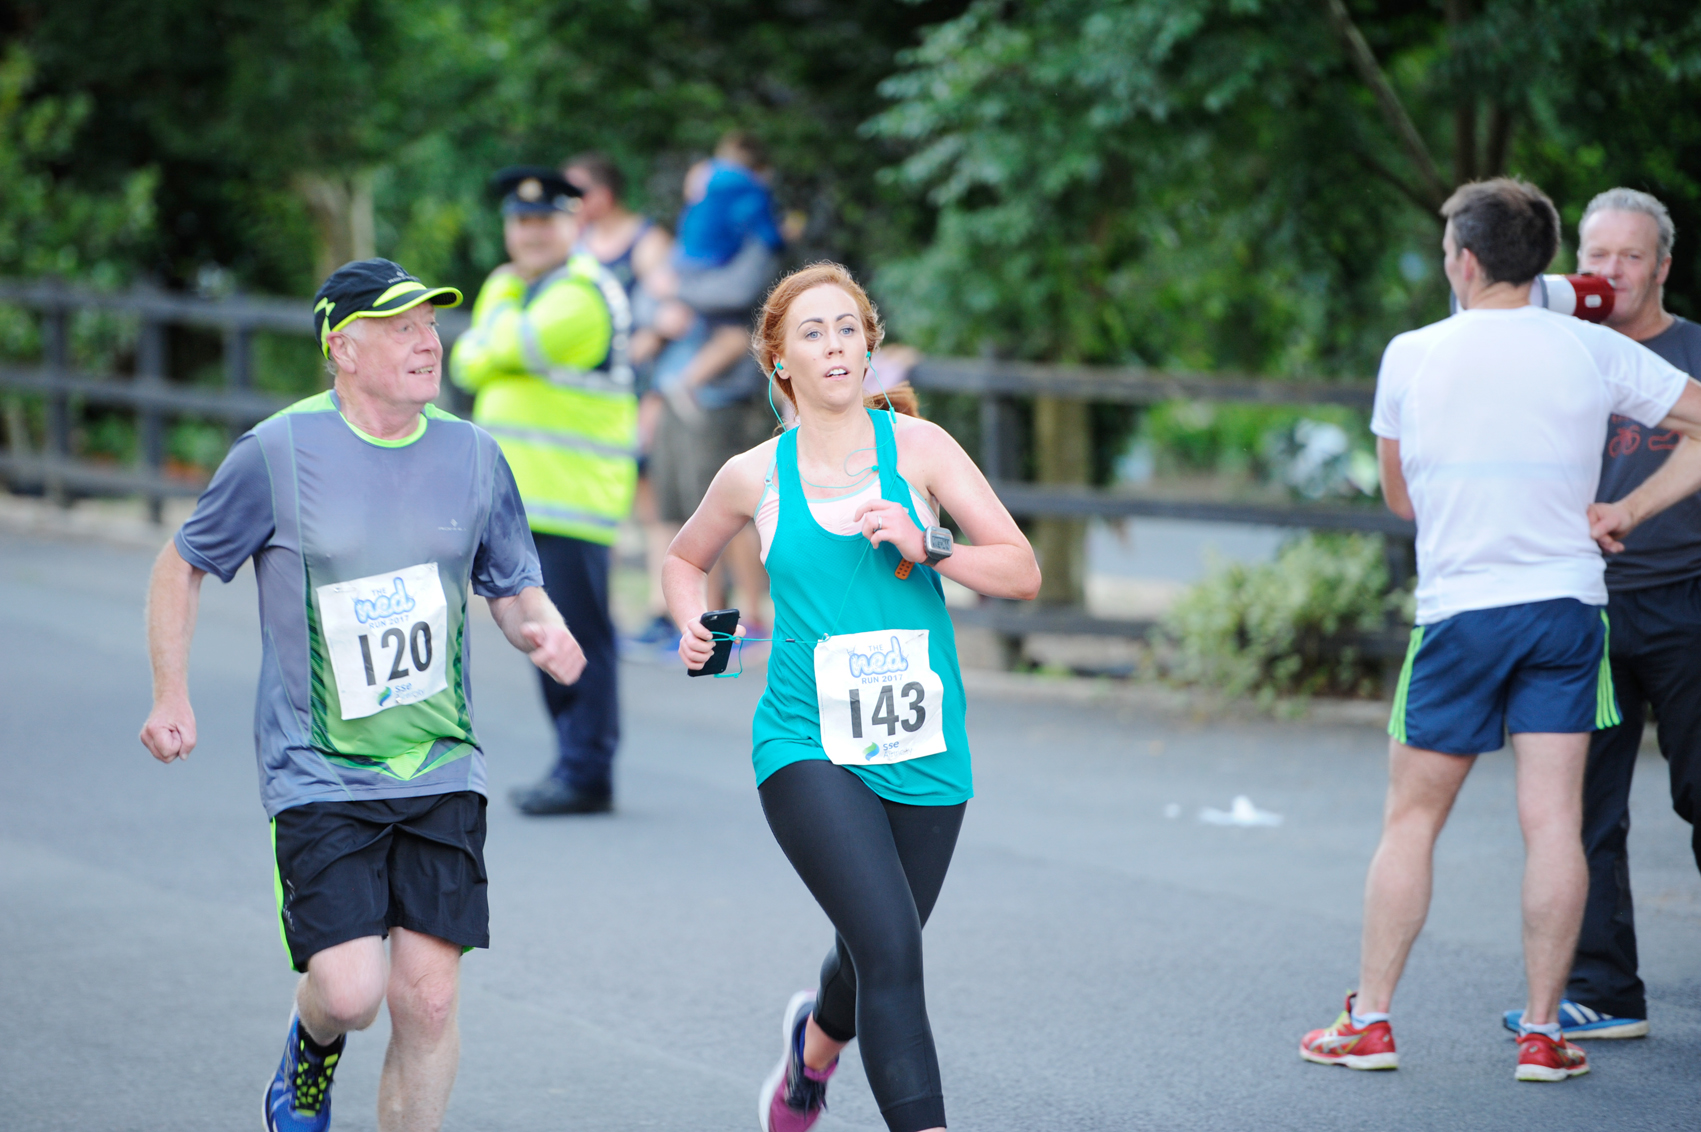 Niall Maguire and Emma Rooney finishing The Ned Run. ©Rory Geary/The Northern Standard